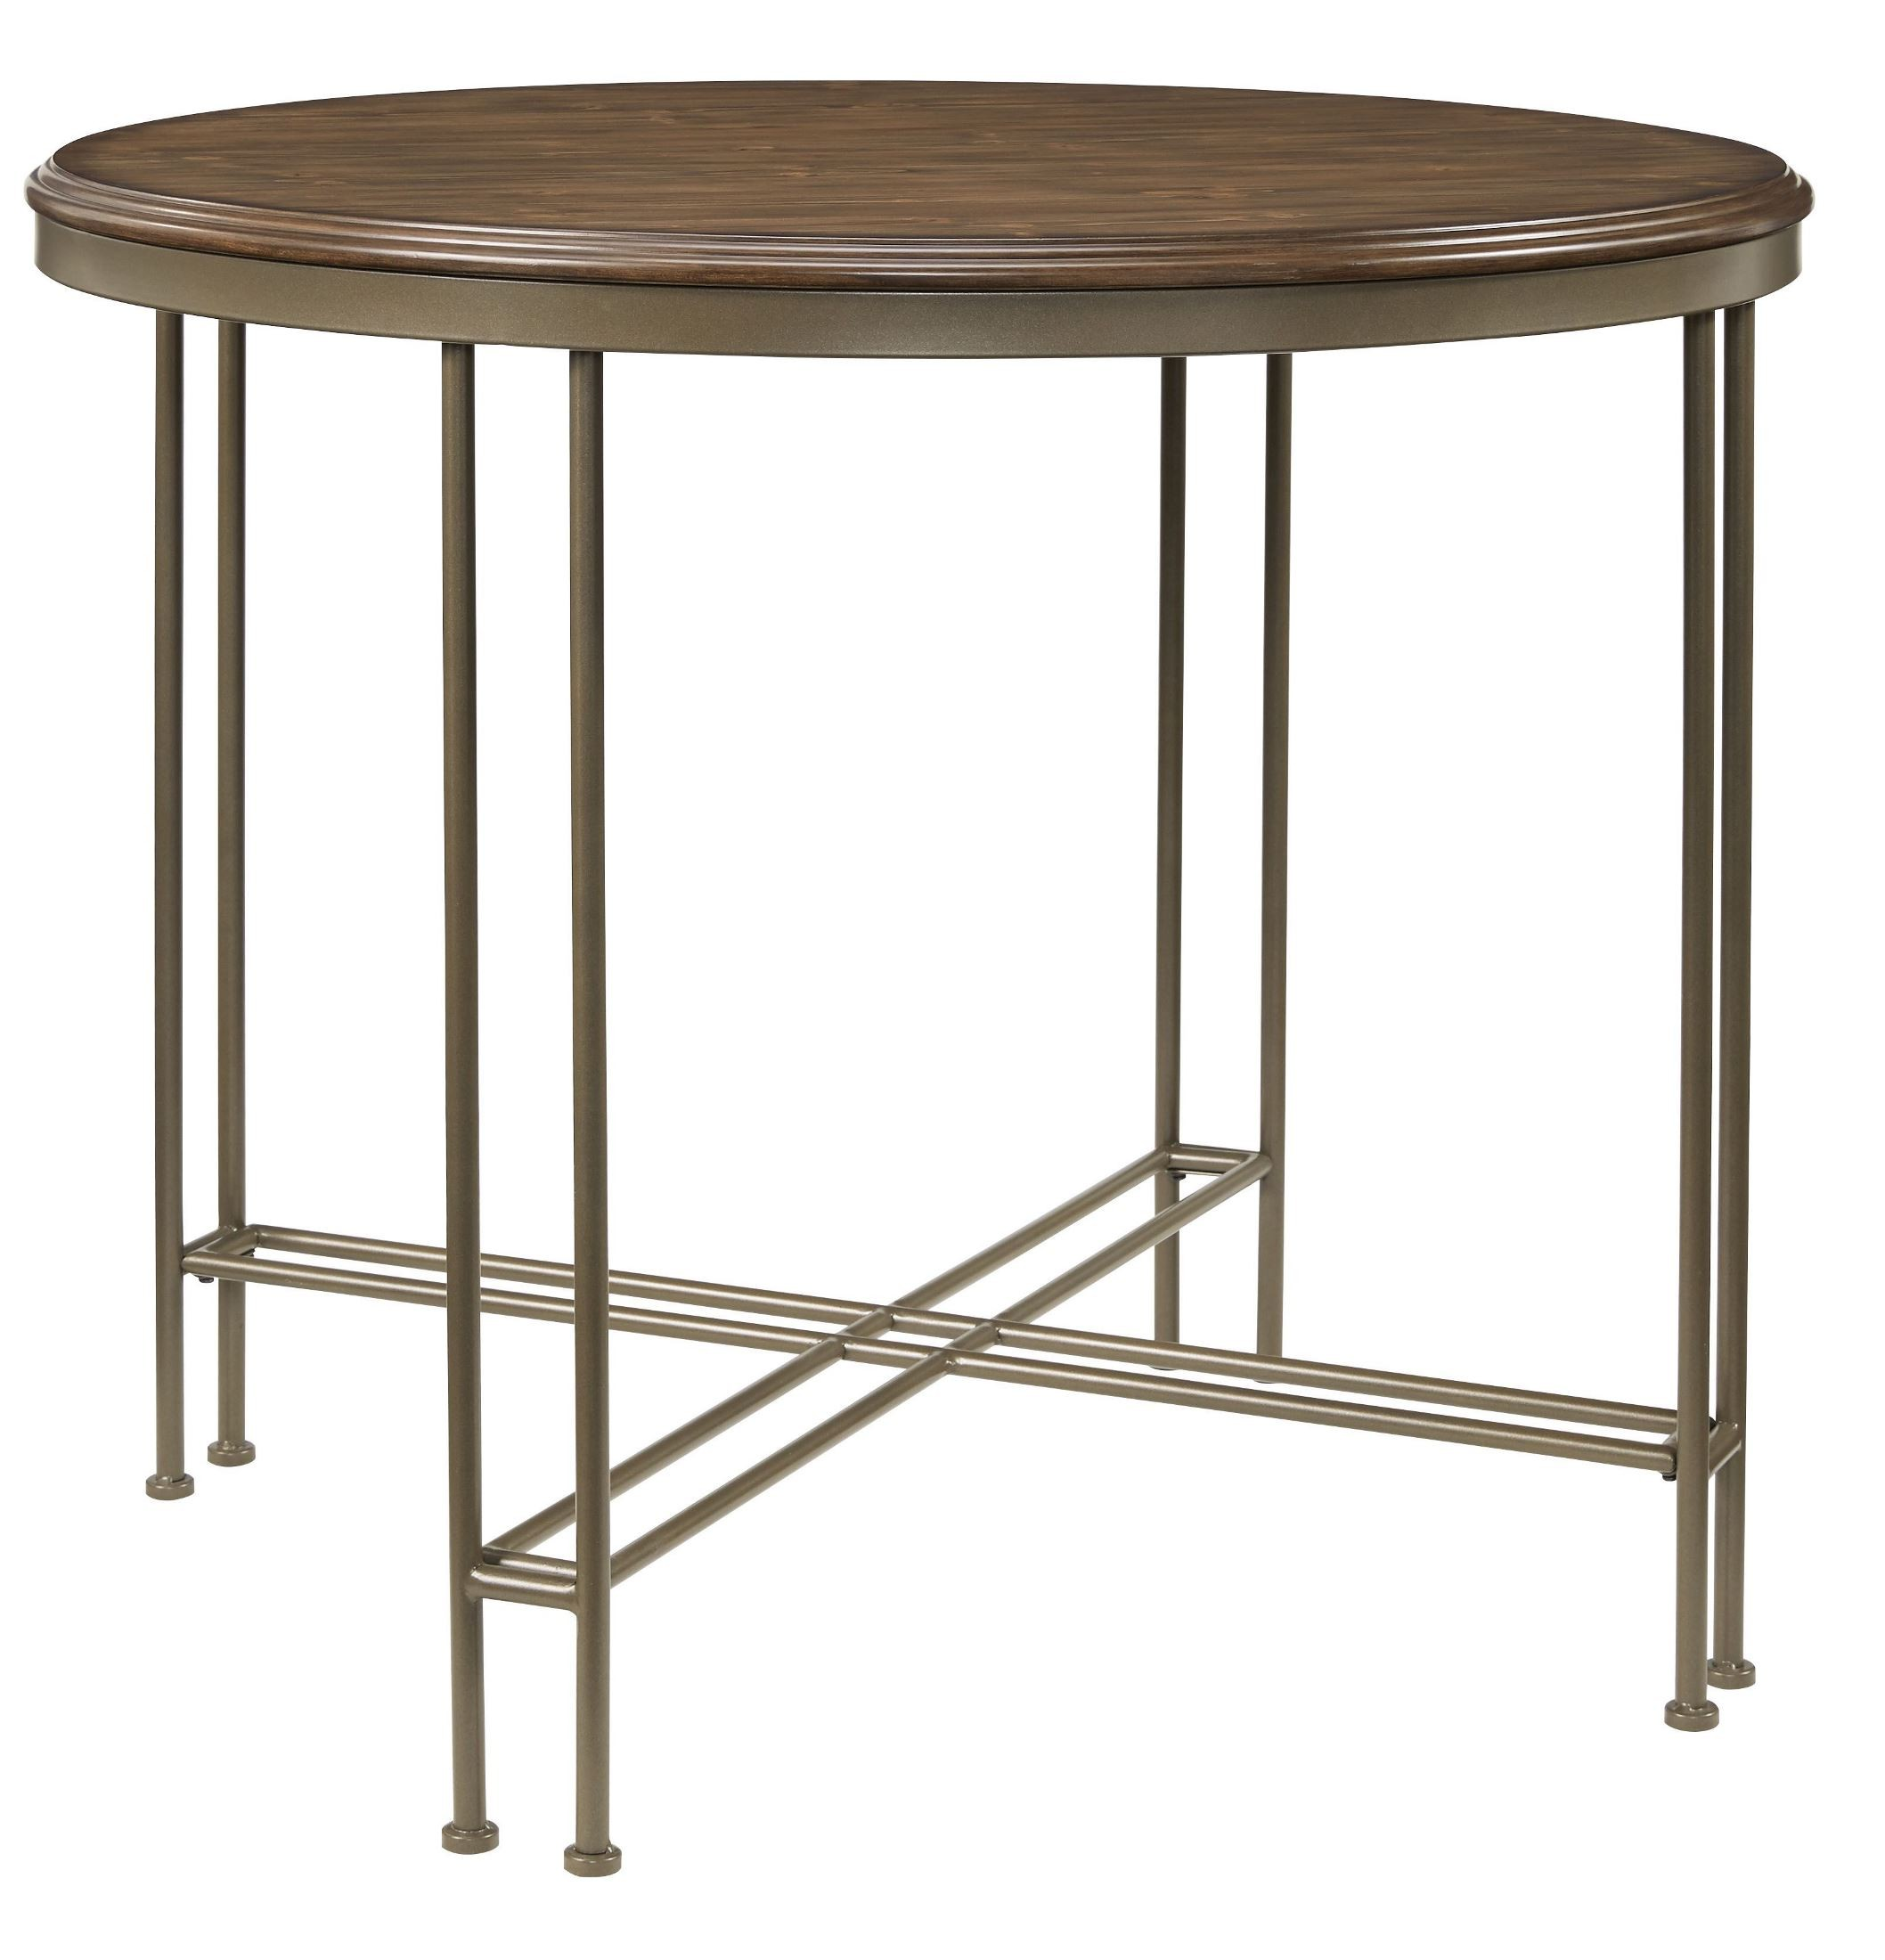 Oslo brown wood counter height dining table 11601 for Standard dining table